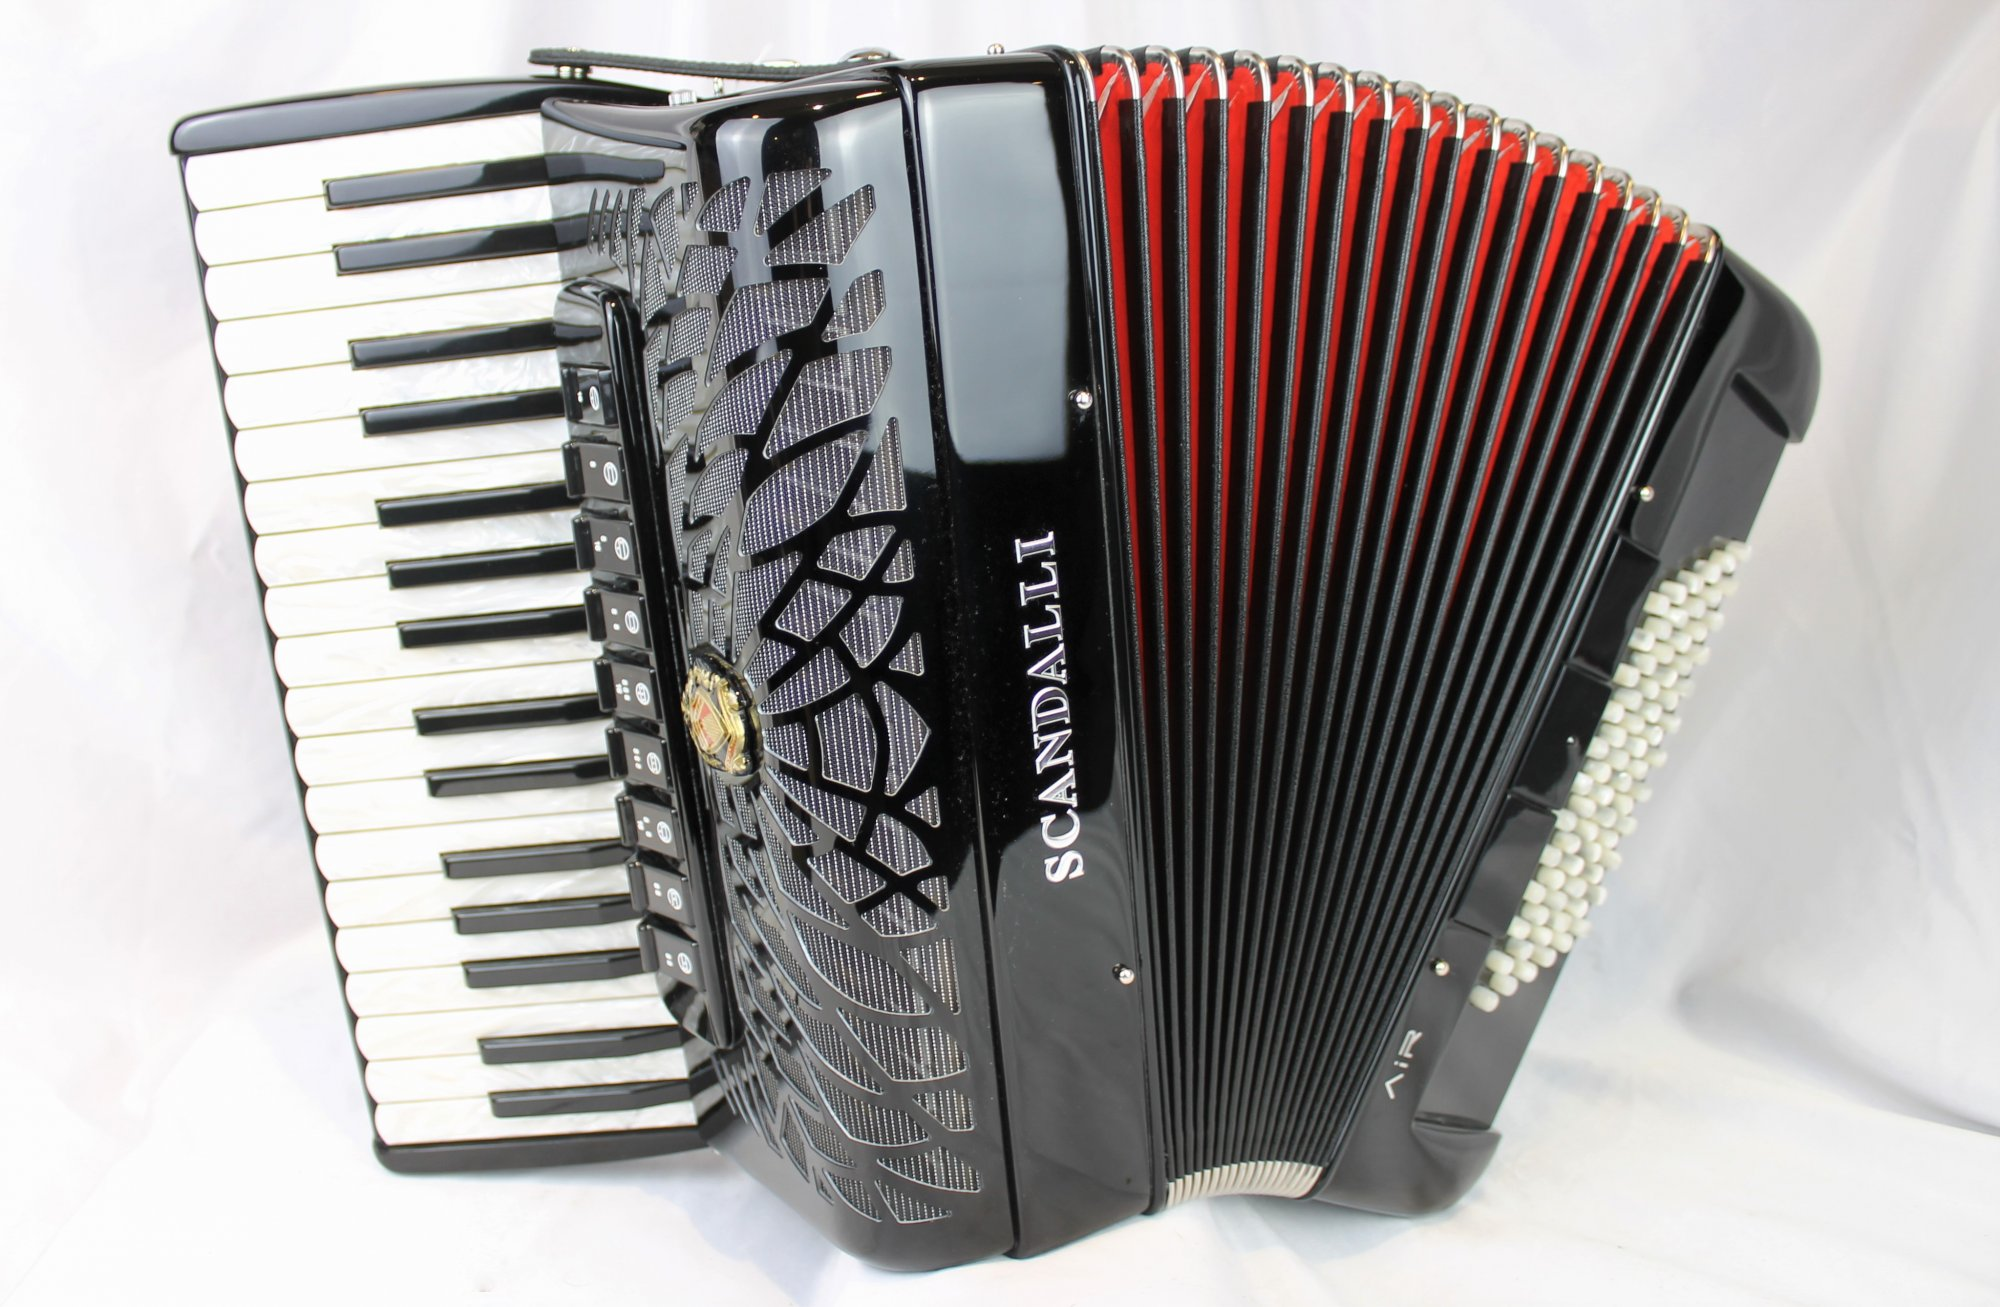 NEW Black Scandalli Air Junior Piano Accordion LMMM 34 72